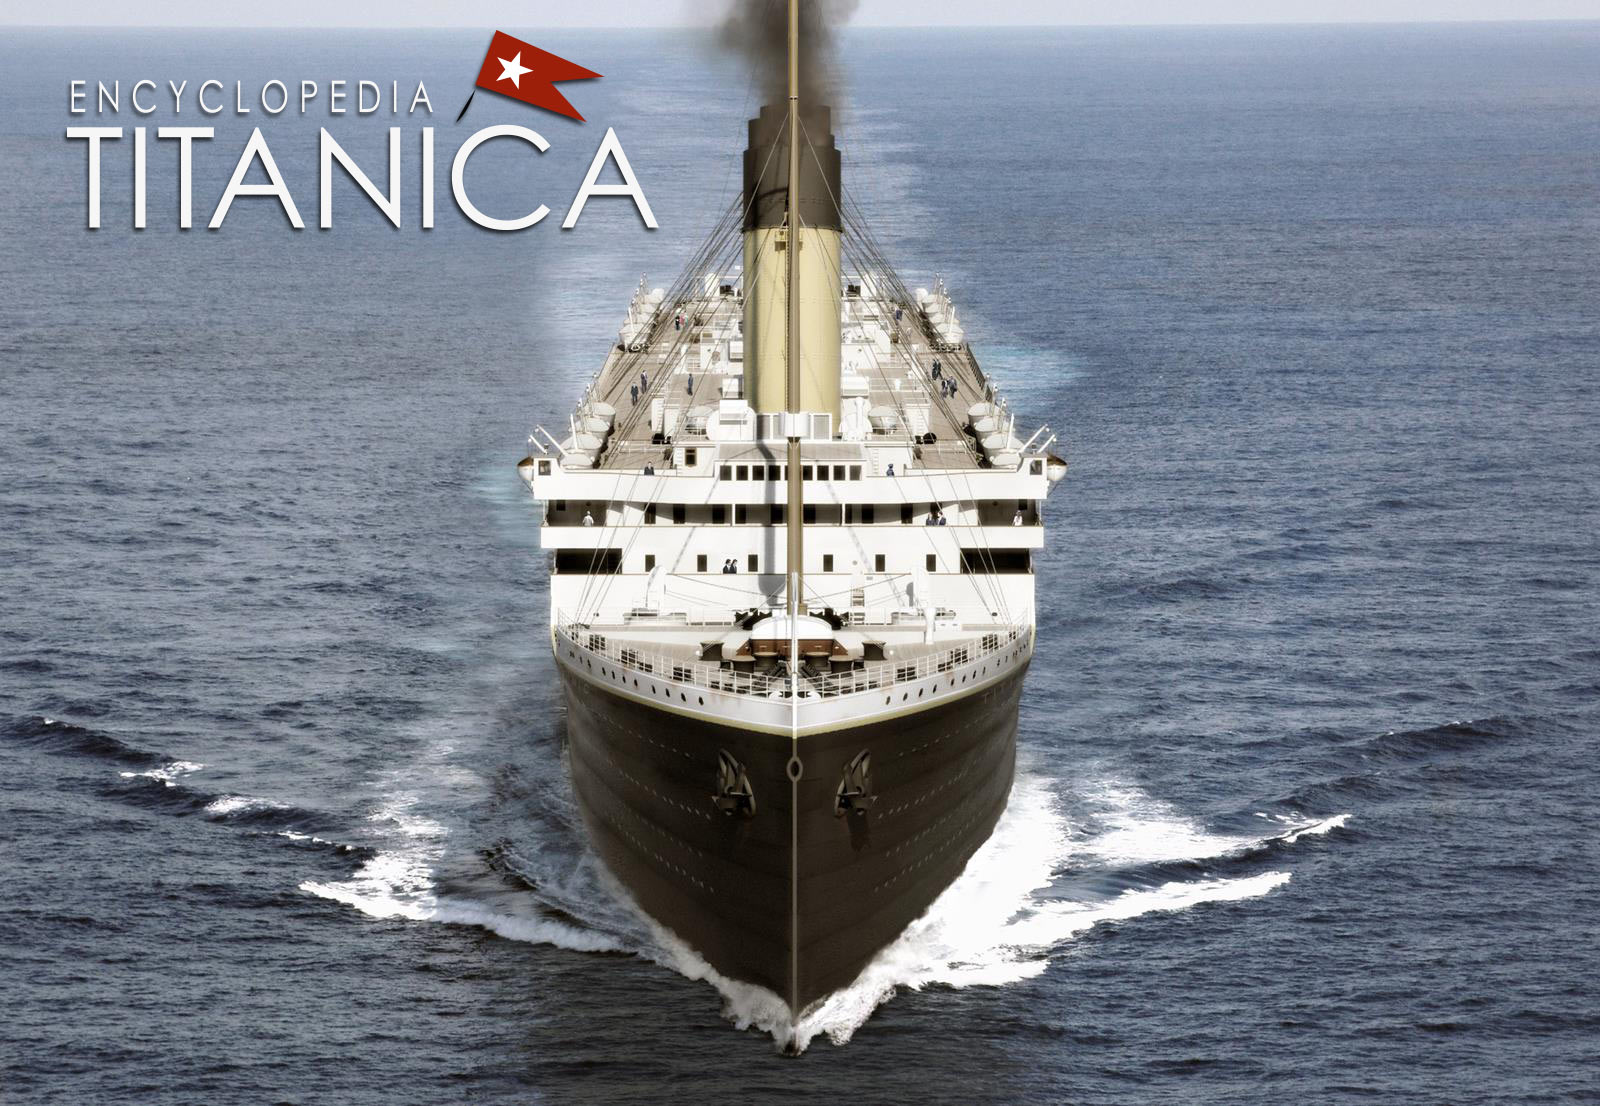 Encyclopedia Titanica  Titanic Facts  History and Biography